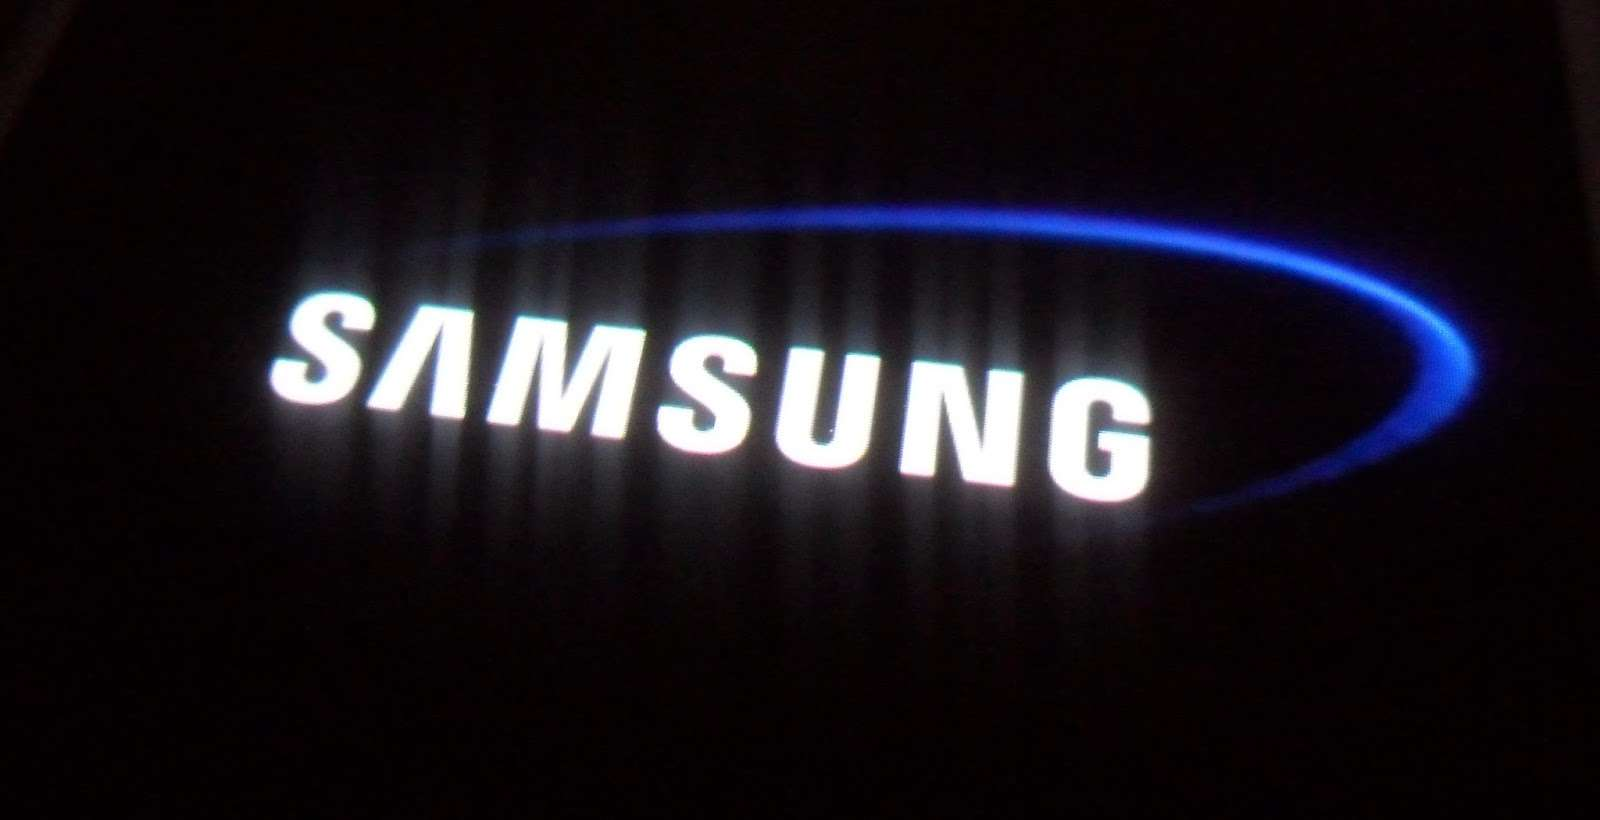 samsung-sells-new-chip-for-health-focused-wearables,-to-measure-body-fat,-skin-temperature-and-heart-rate_kuwait